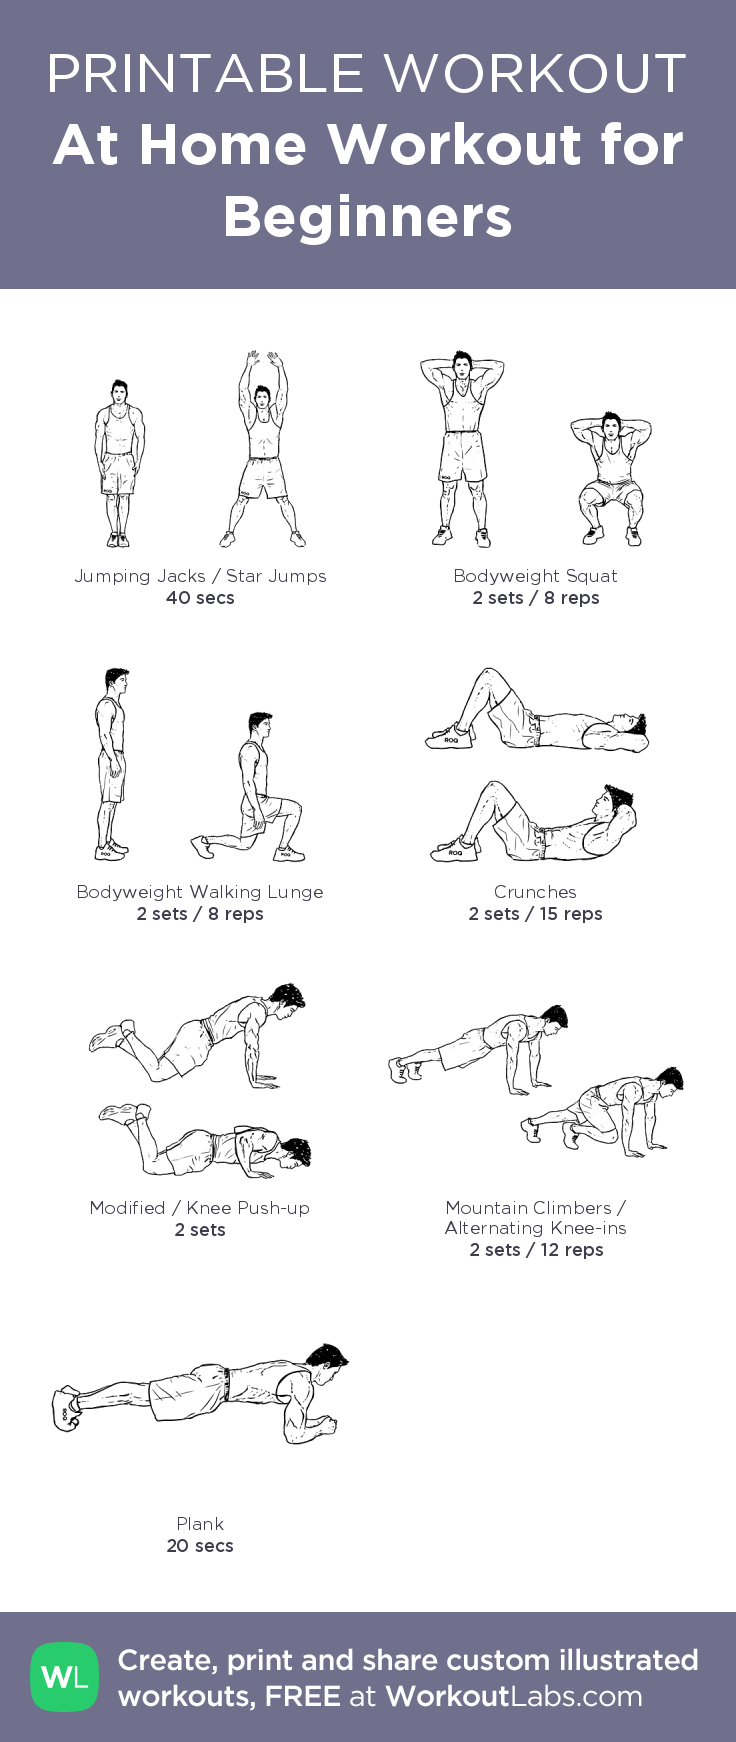 At Home Workout For Beginners My Custom Exercise Plan Created WorkoutLabs O Click Through To Download As A Printable PDF Customworkout